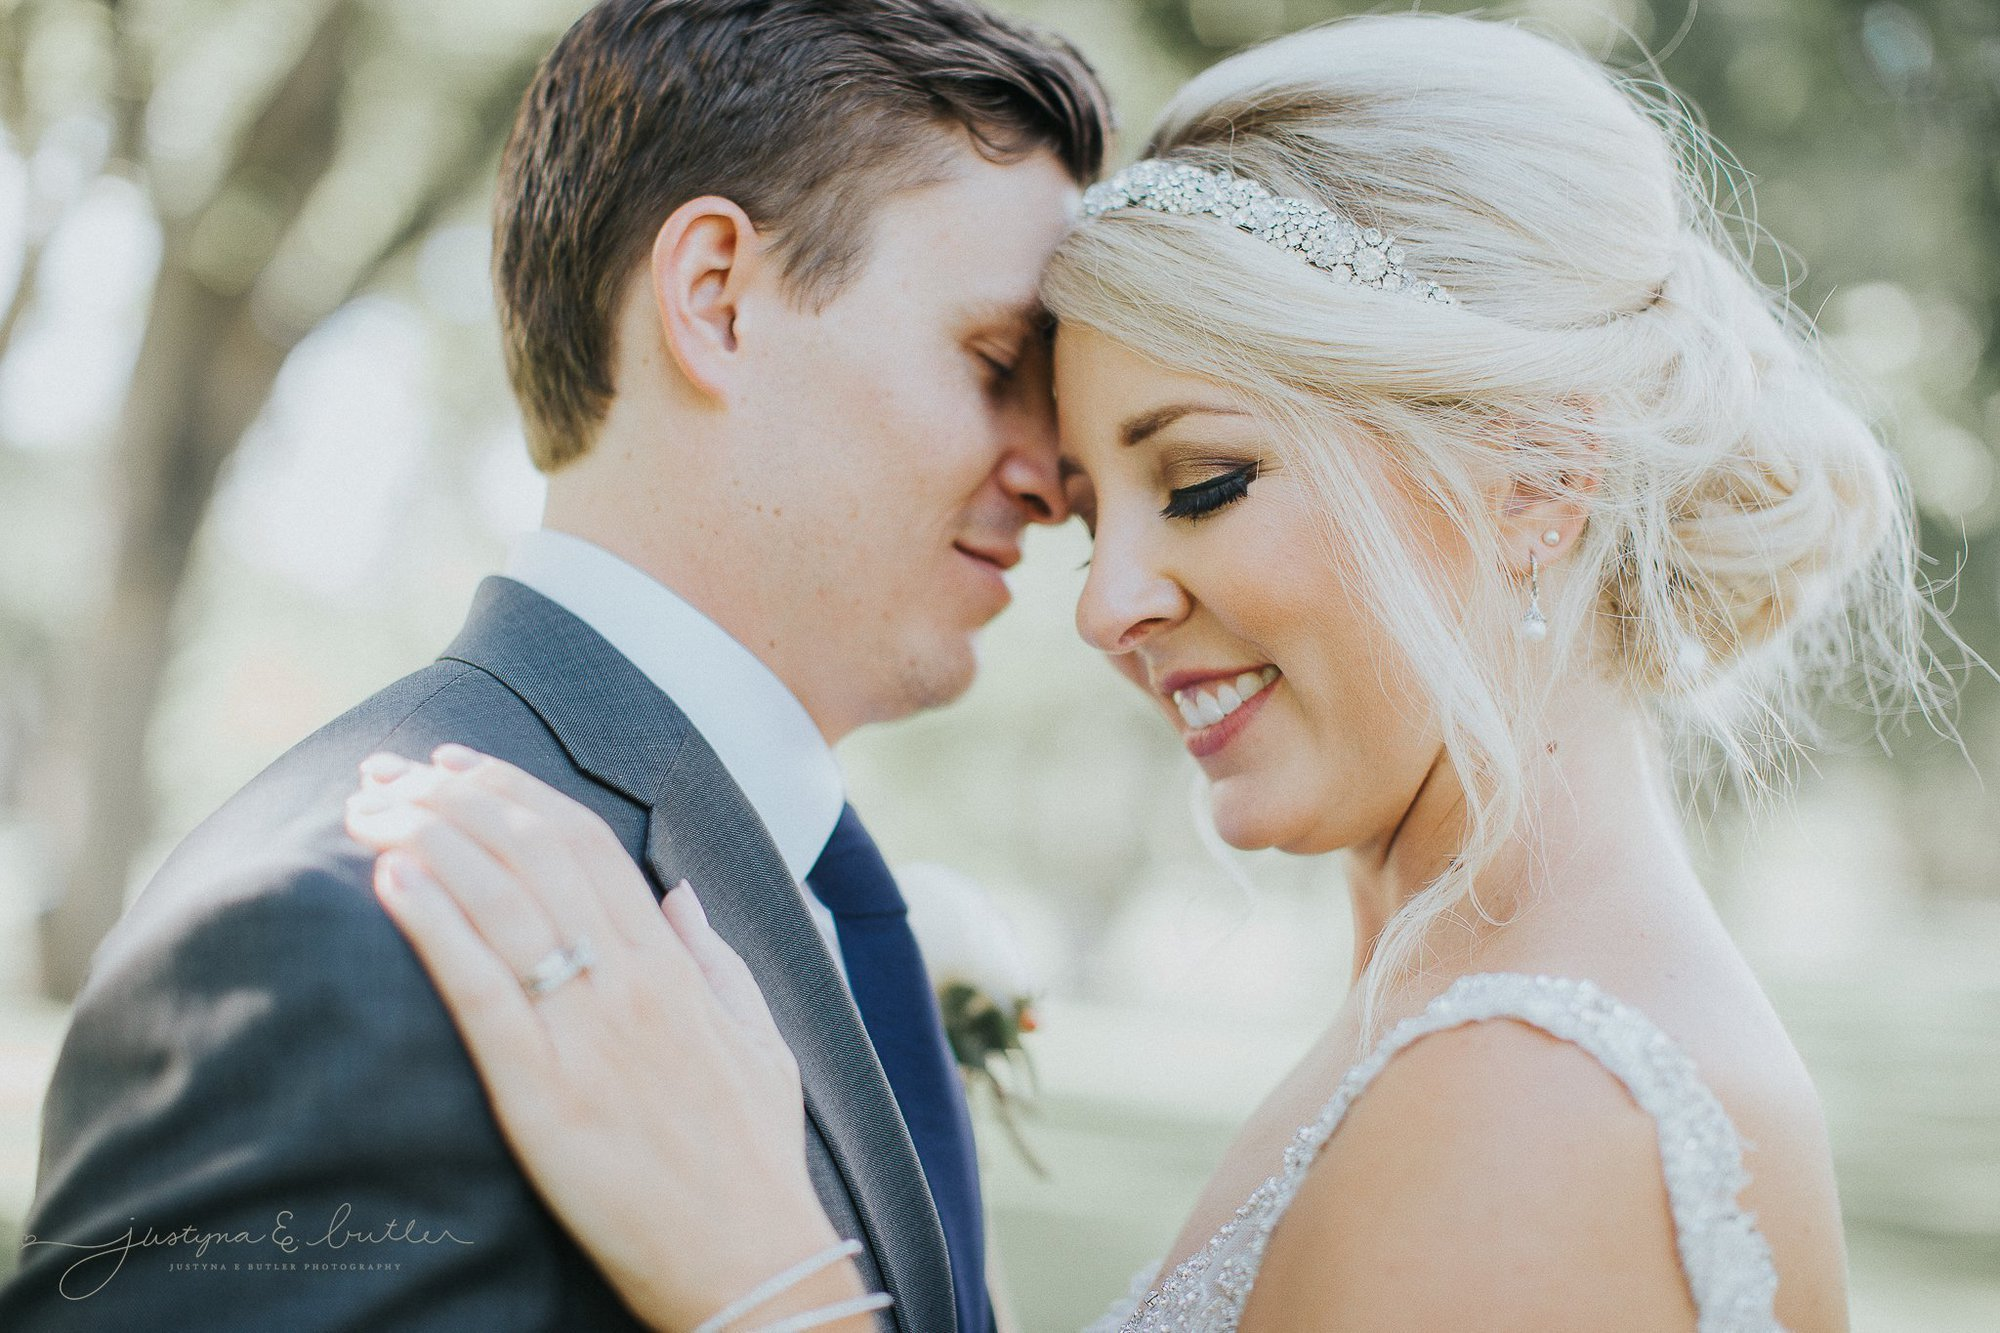 COLORADO STATE UNIVERSITY WEDDING AT THE OVAL